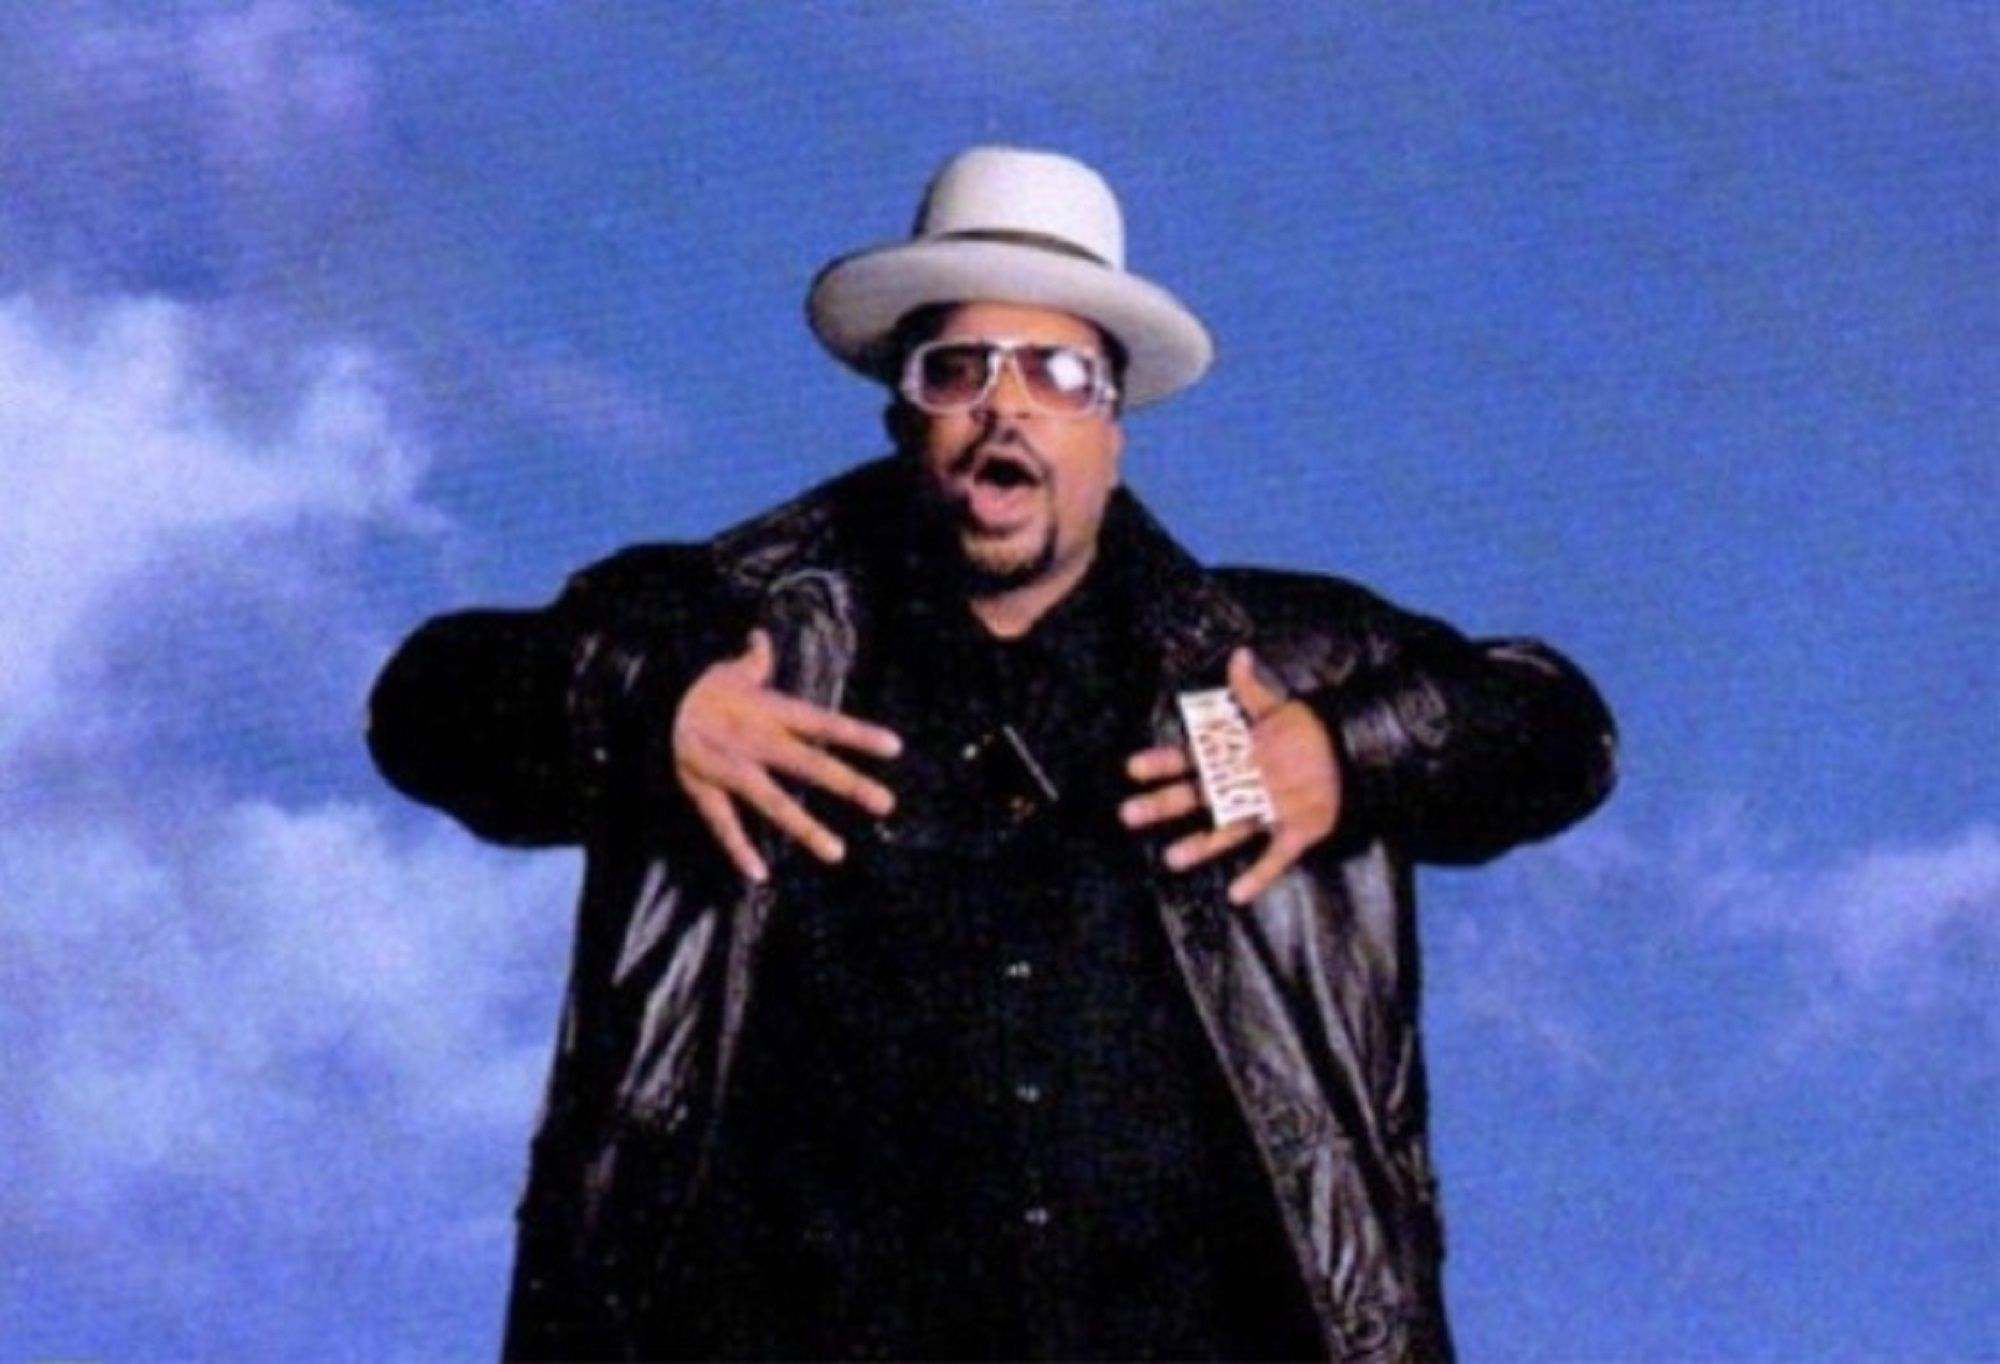 Sir Mix-a-lot Net Worth